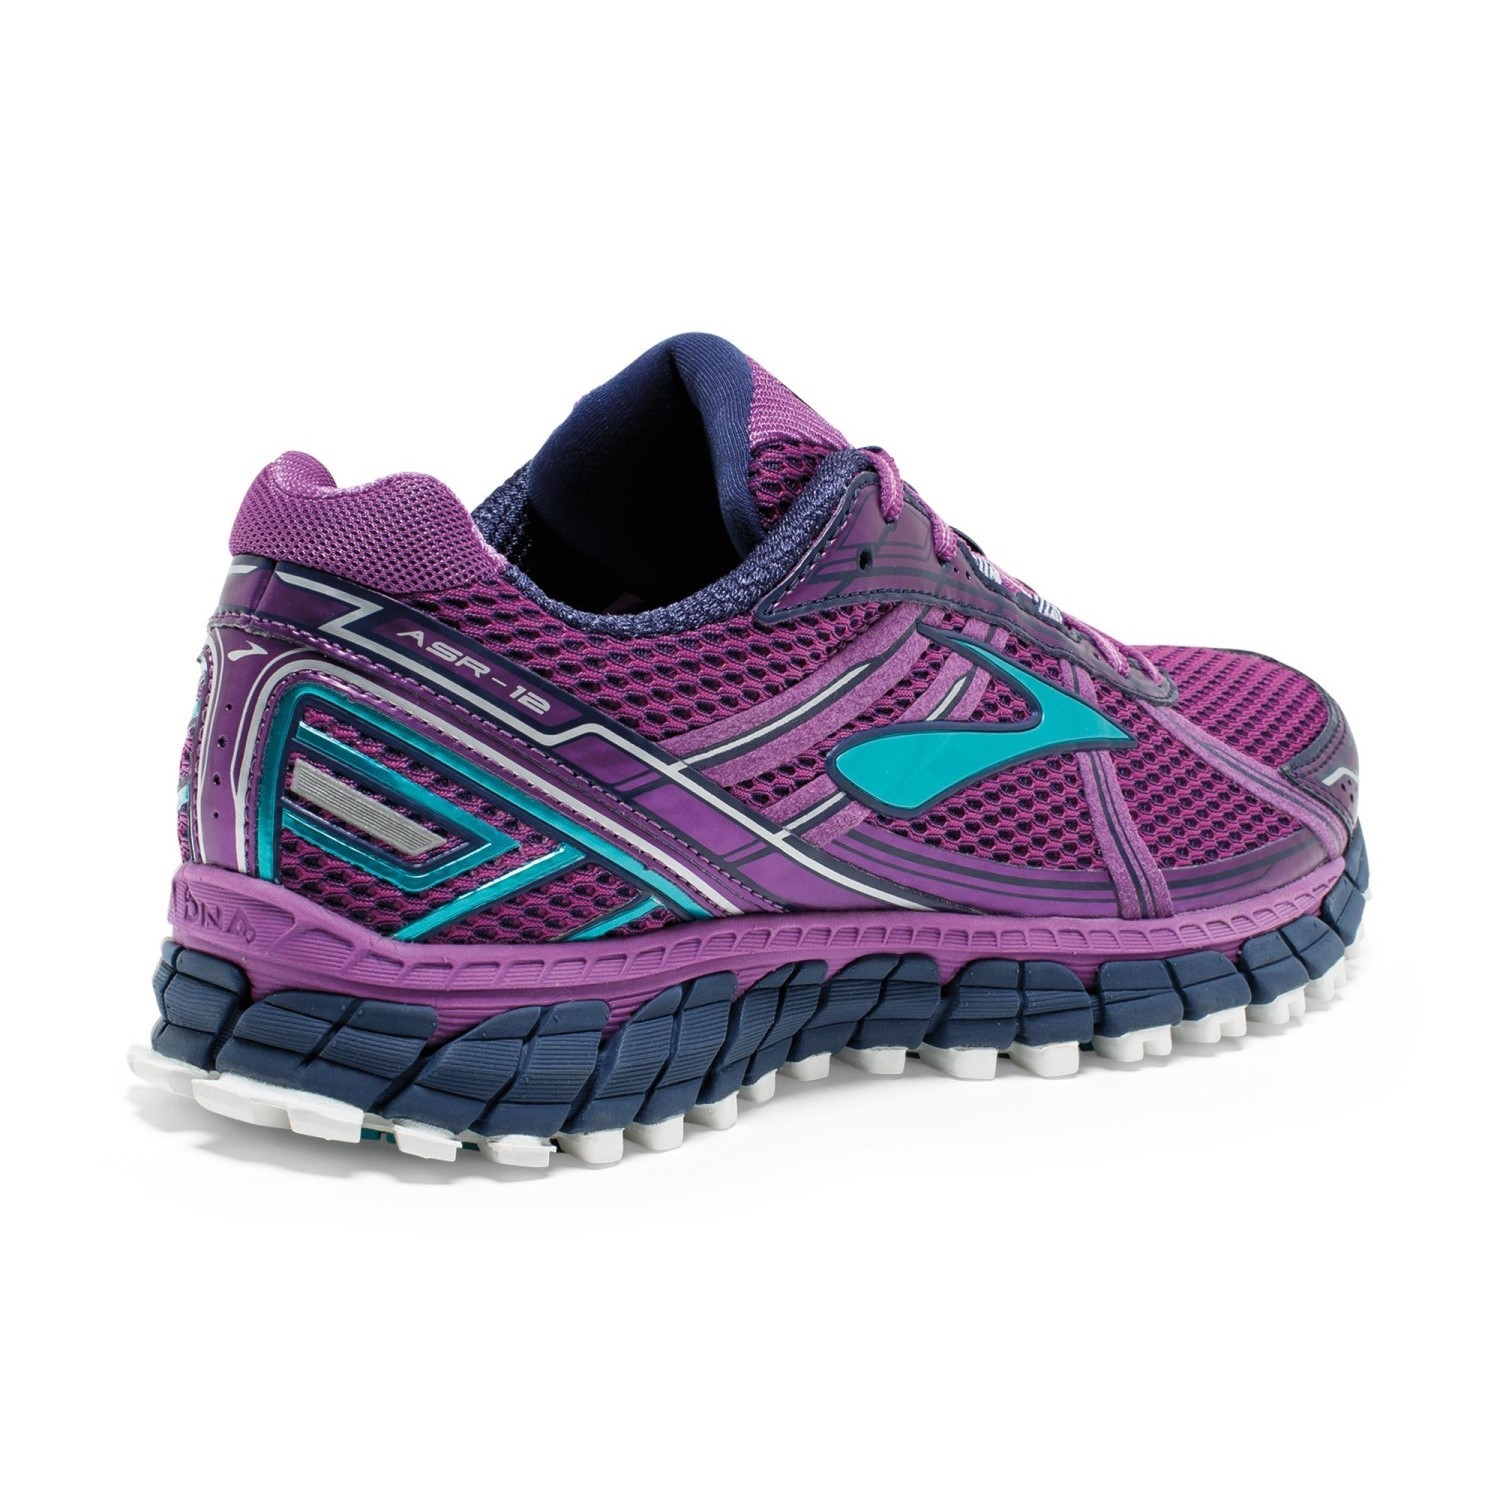 Adrenaline Asr  Trail Running Shoes